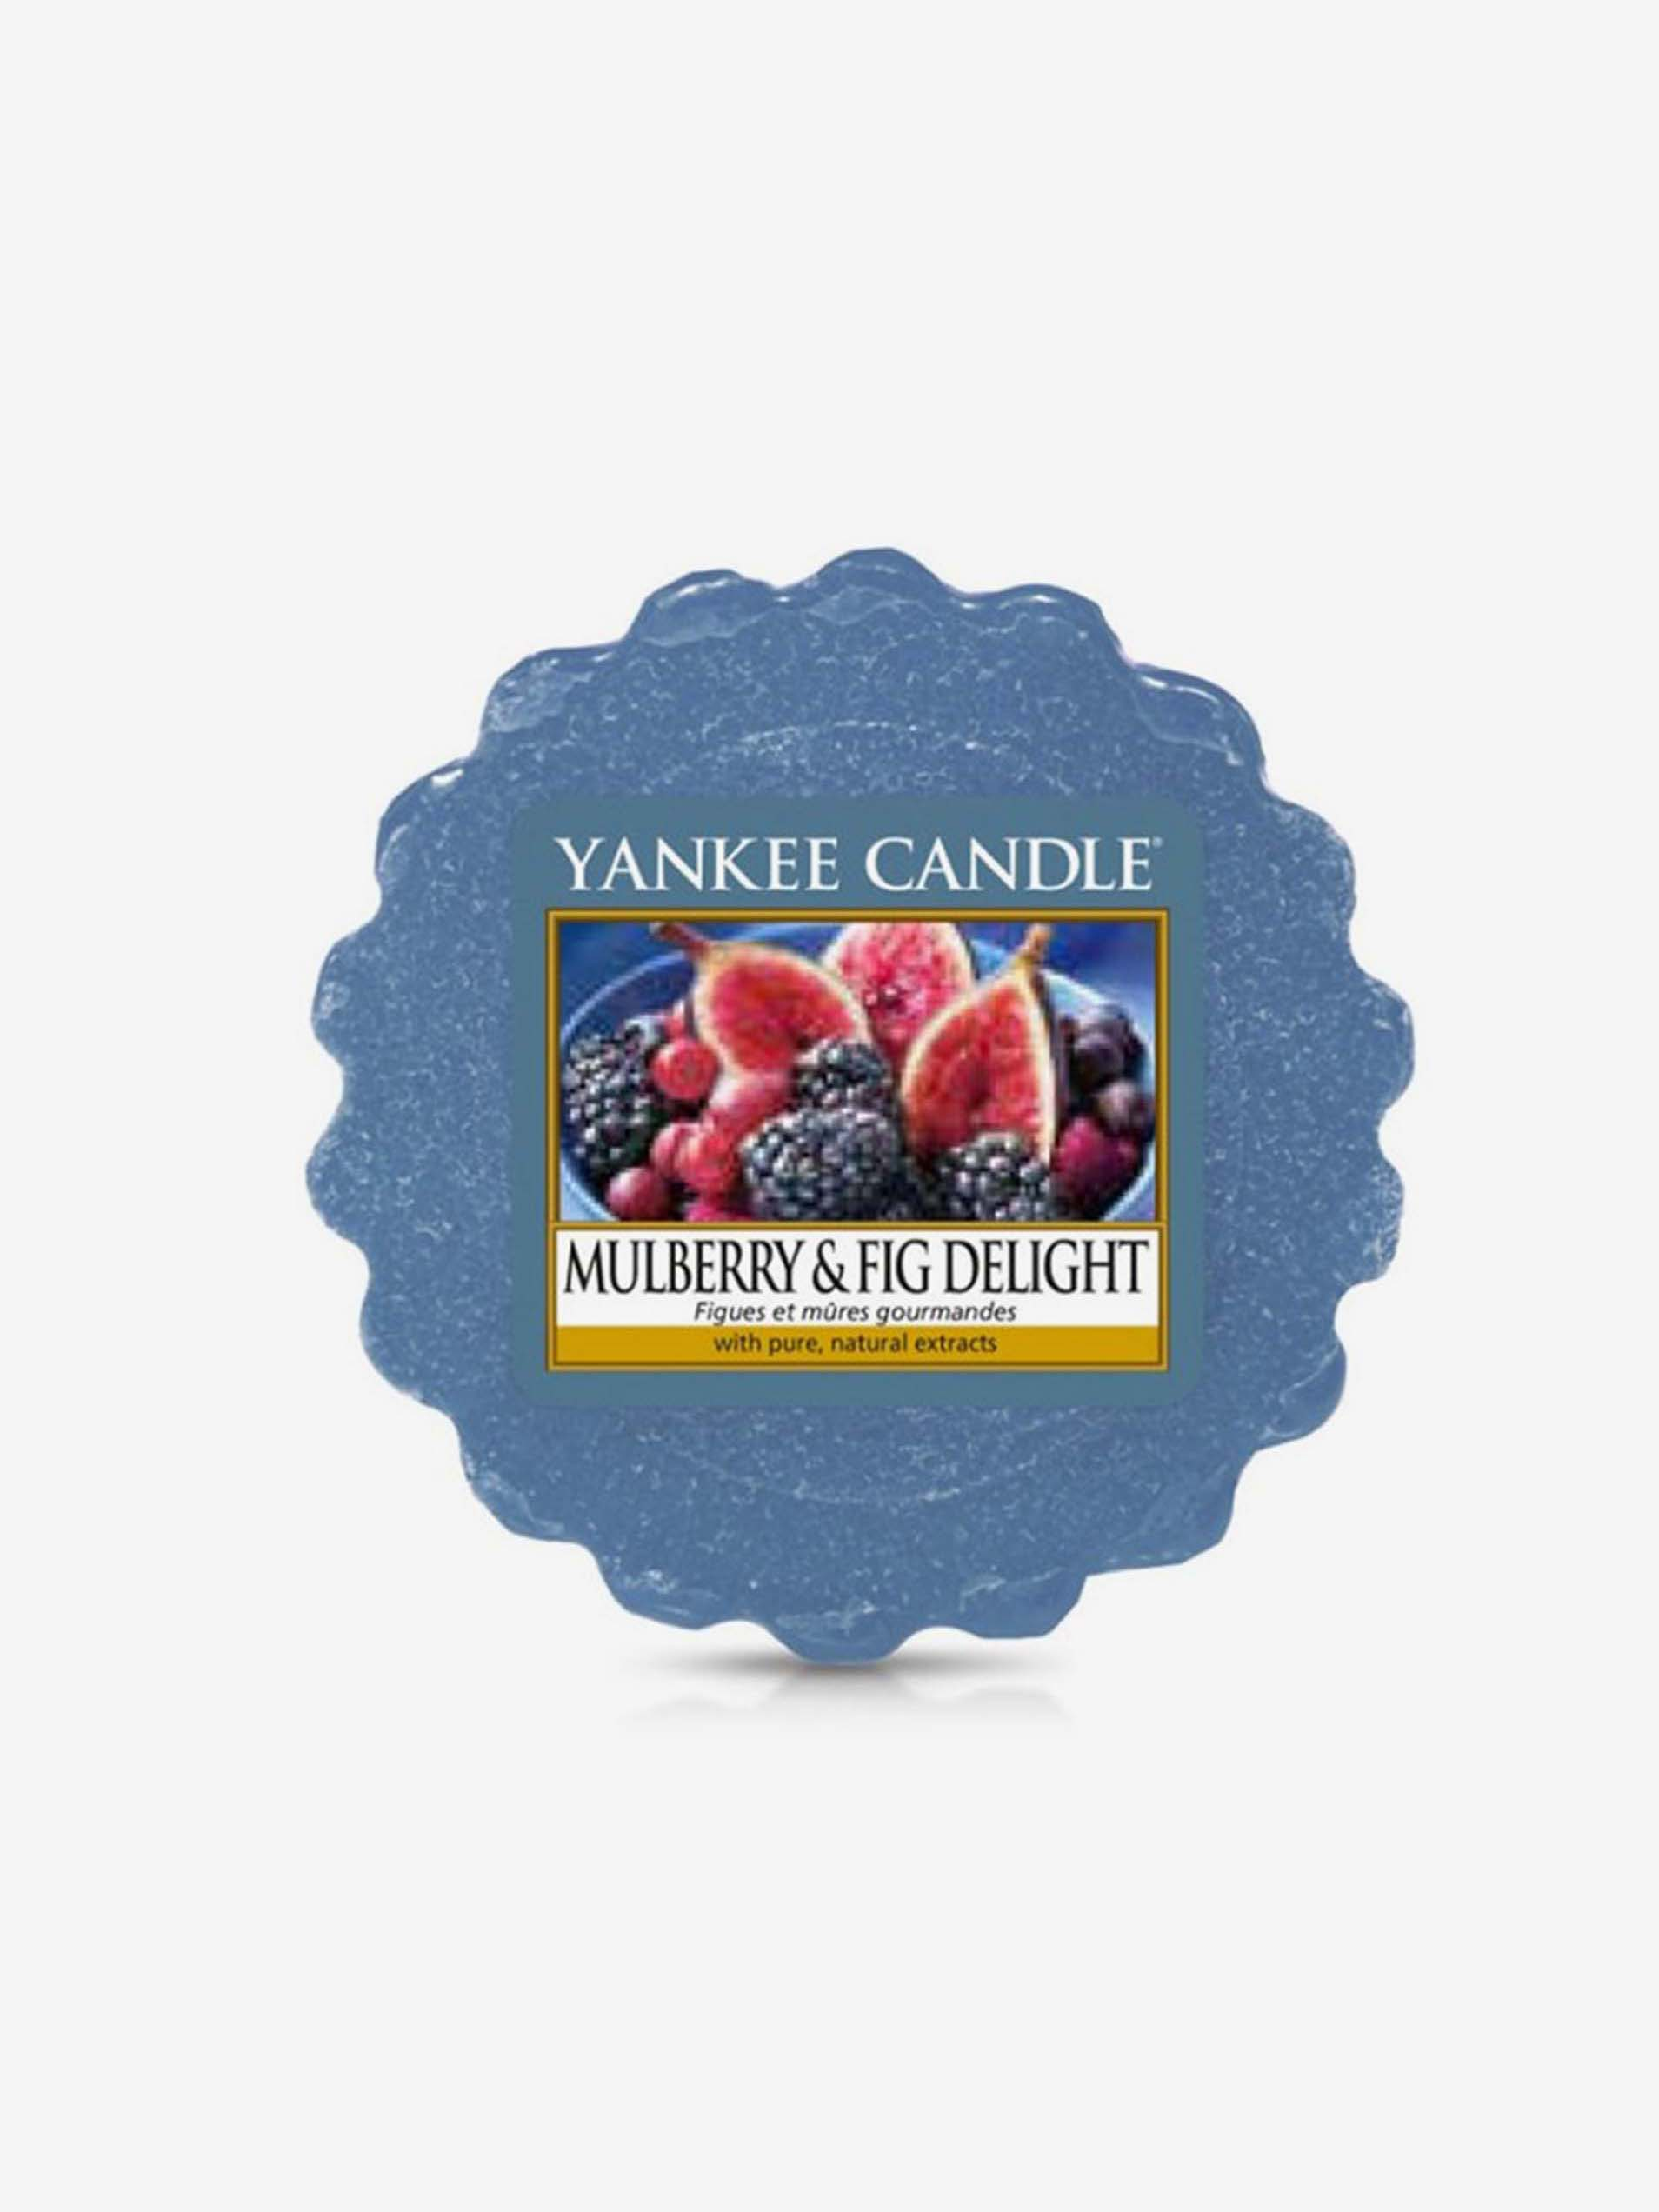 Yankee Candle vonný vosk do aromalampy Mulberry & Fig Delight